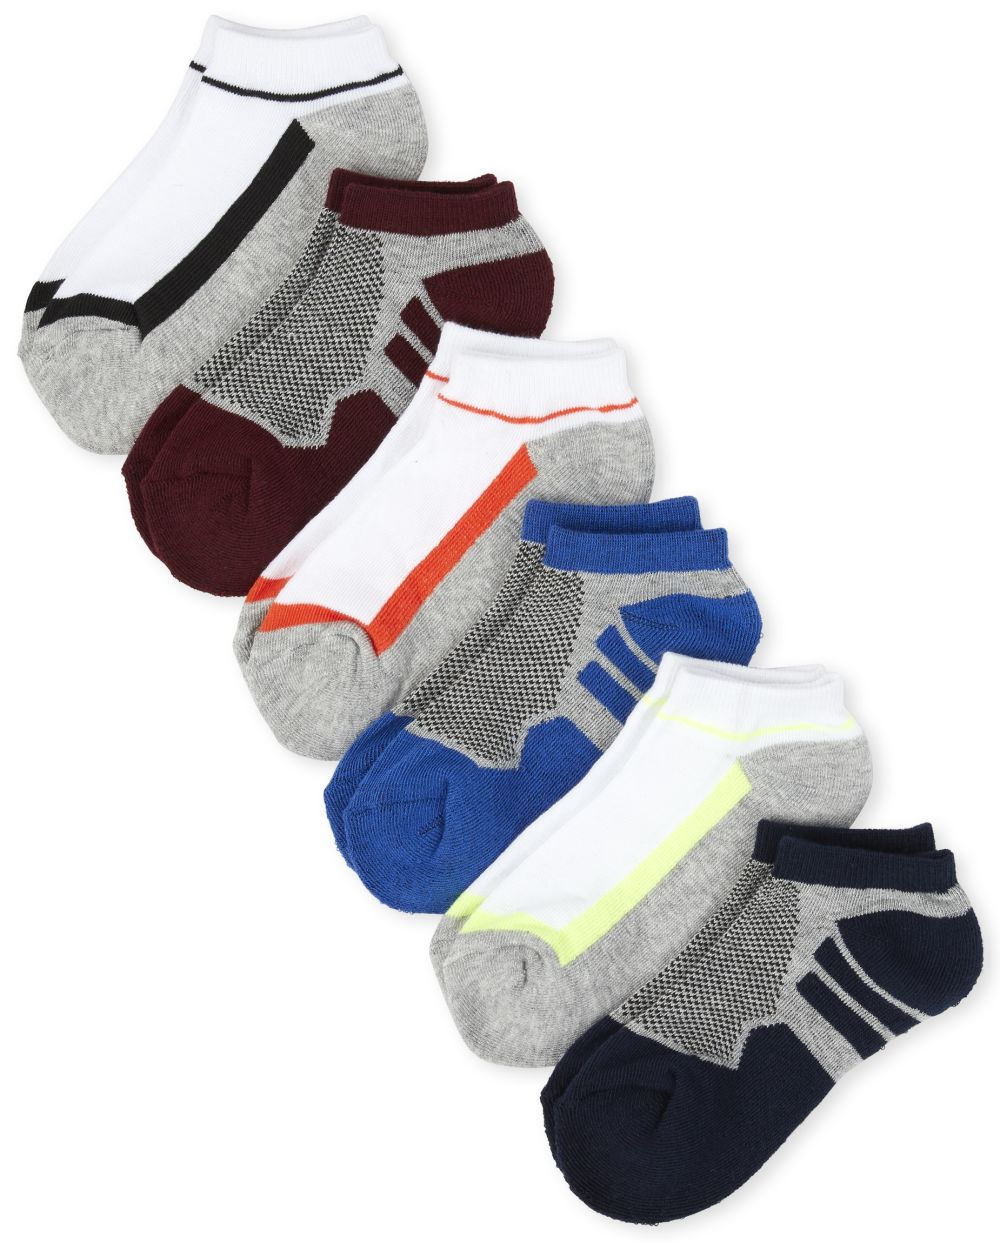 Boys Athletic Ankle Socks 6-Pack